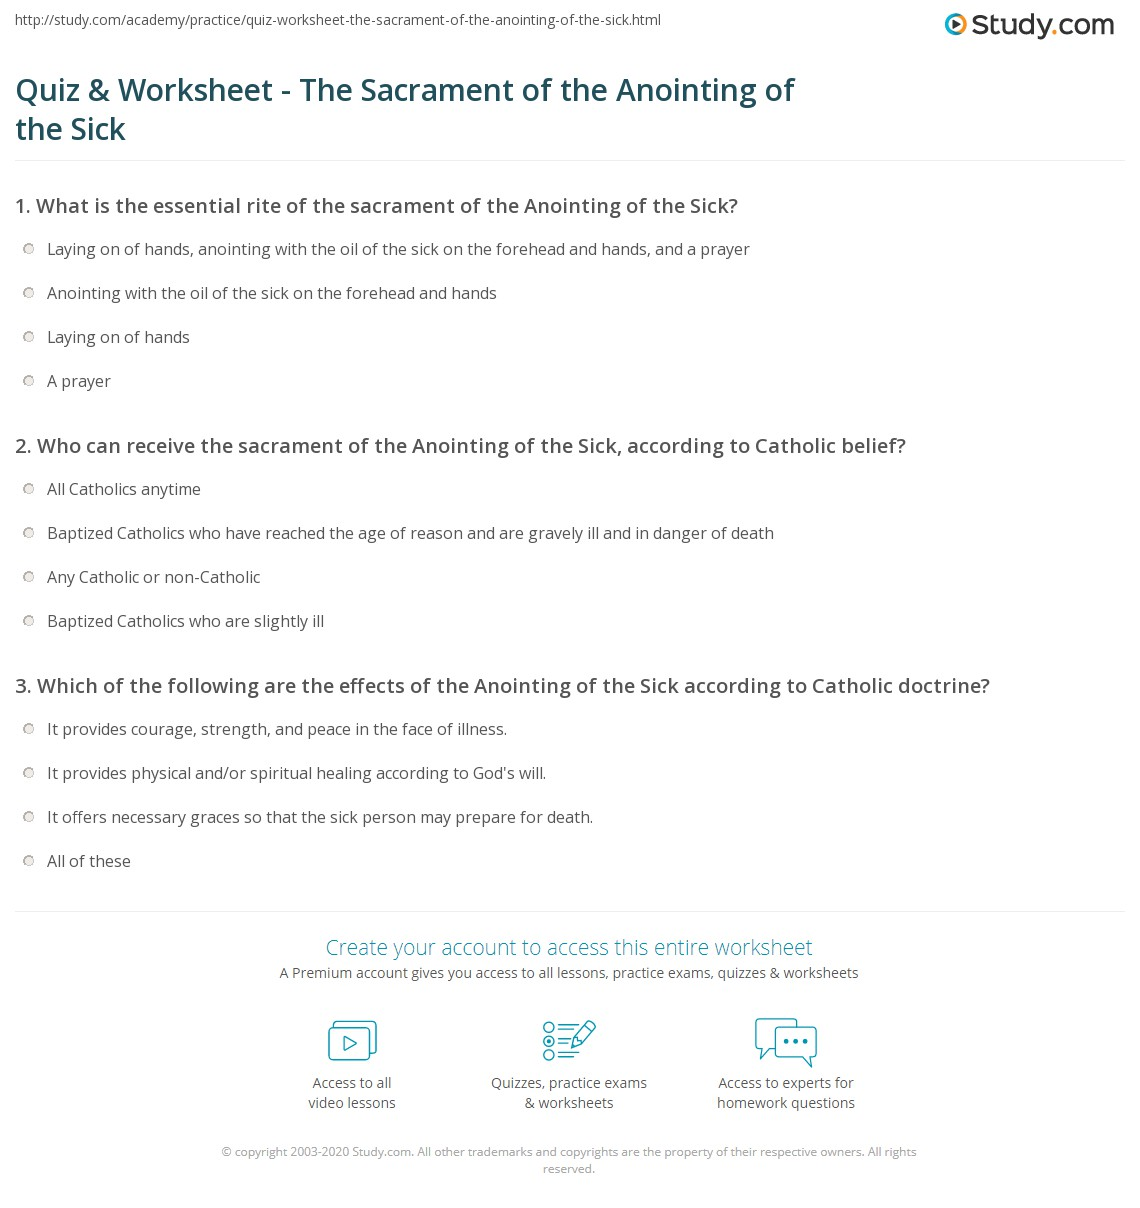 Quiz Worksheet The Sacrament Of The Anointing Of The Sick